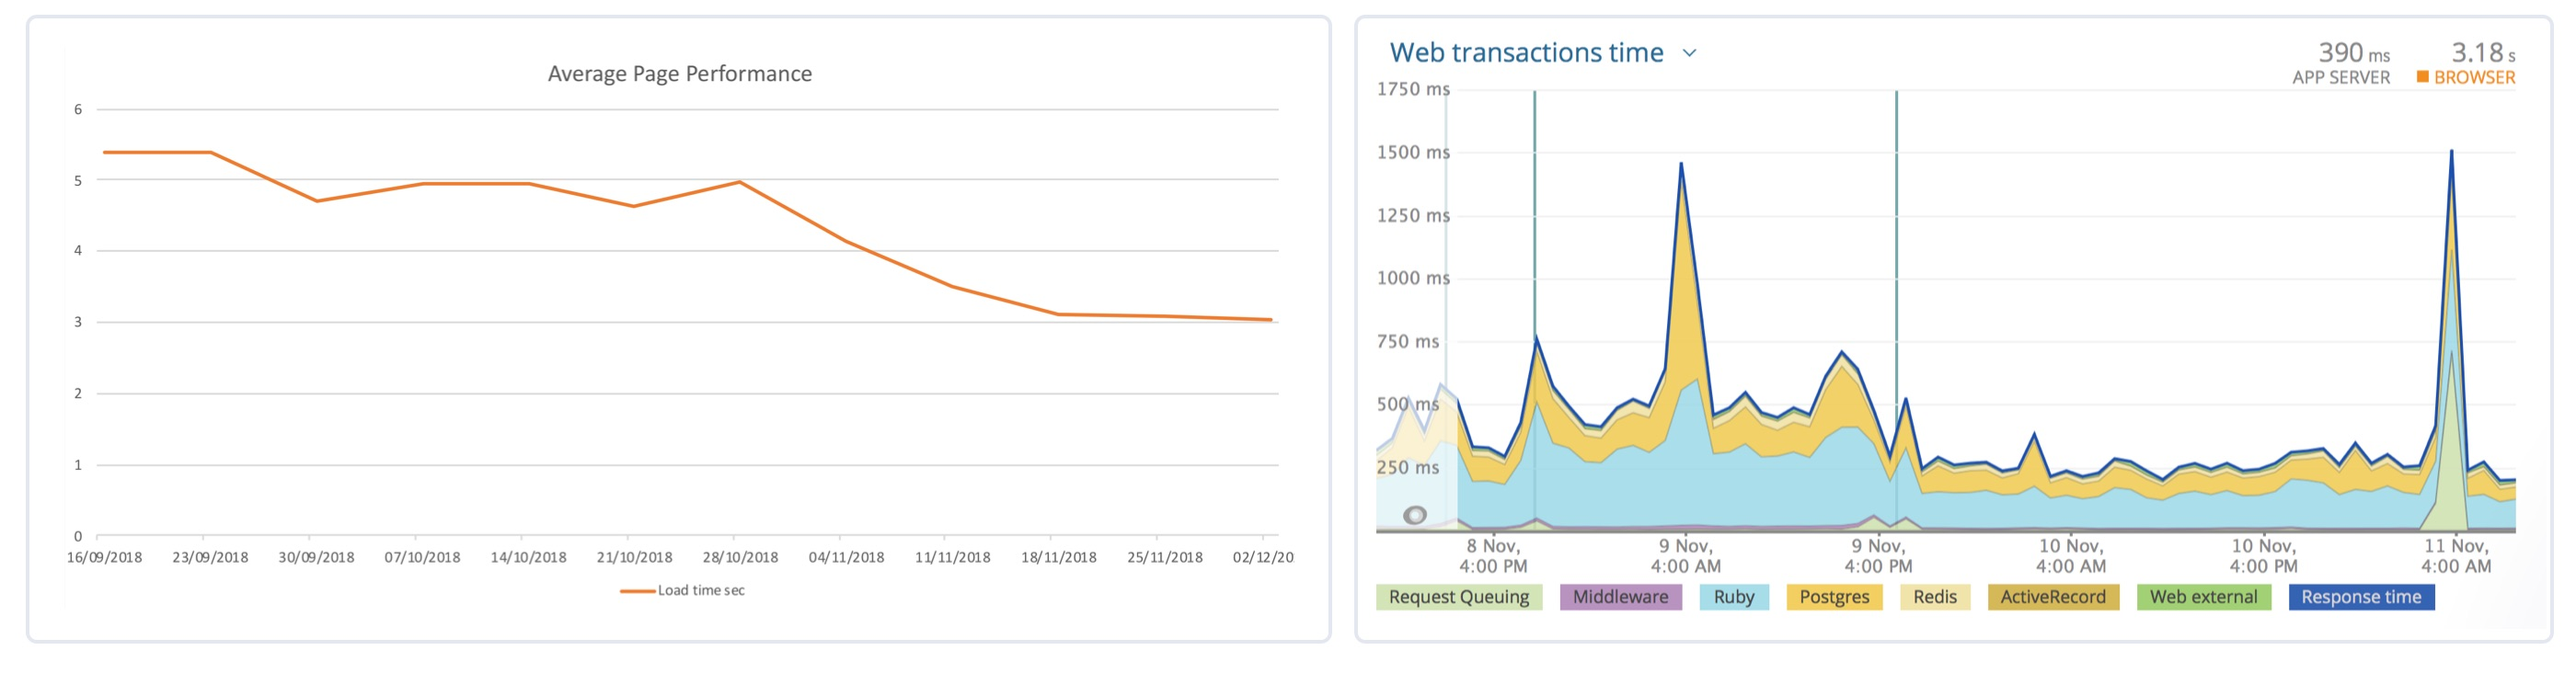 A graph showing the decreasing load time for pages and a view of the web transactions time graph on Paneco